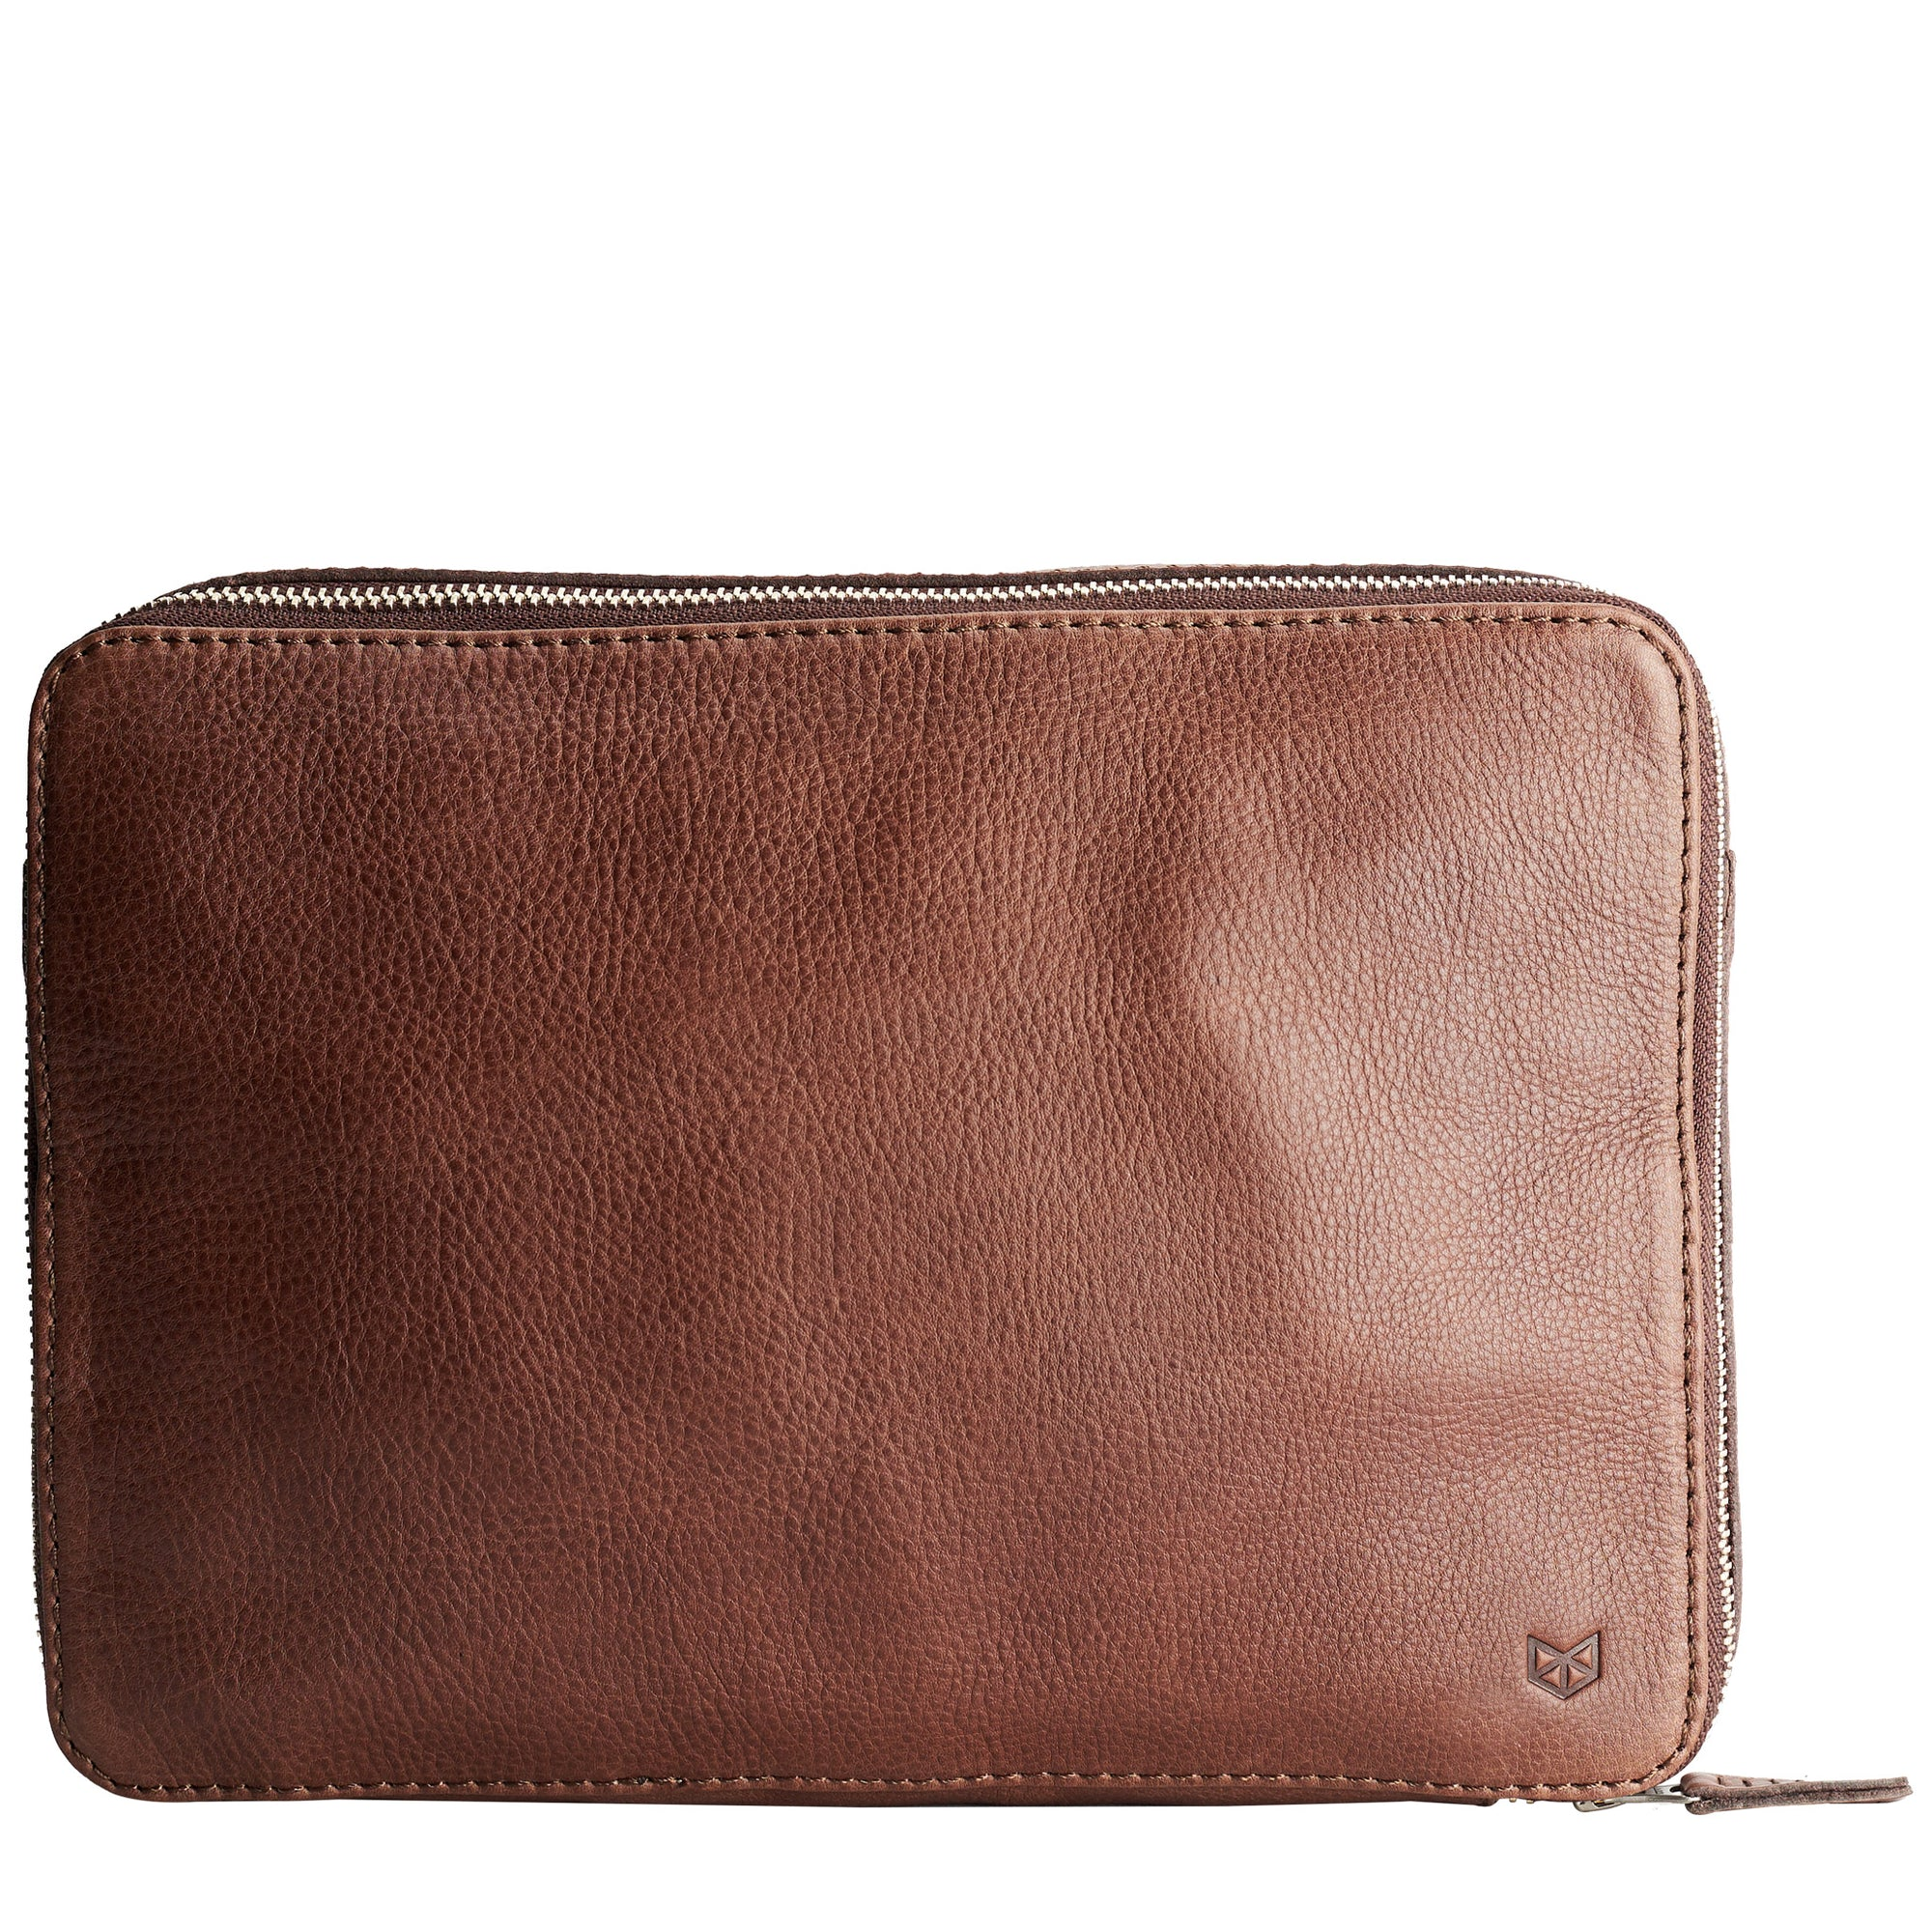 Tech Laptop Tablet Bag · Brown